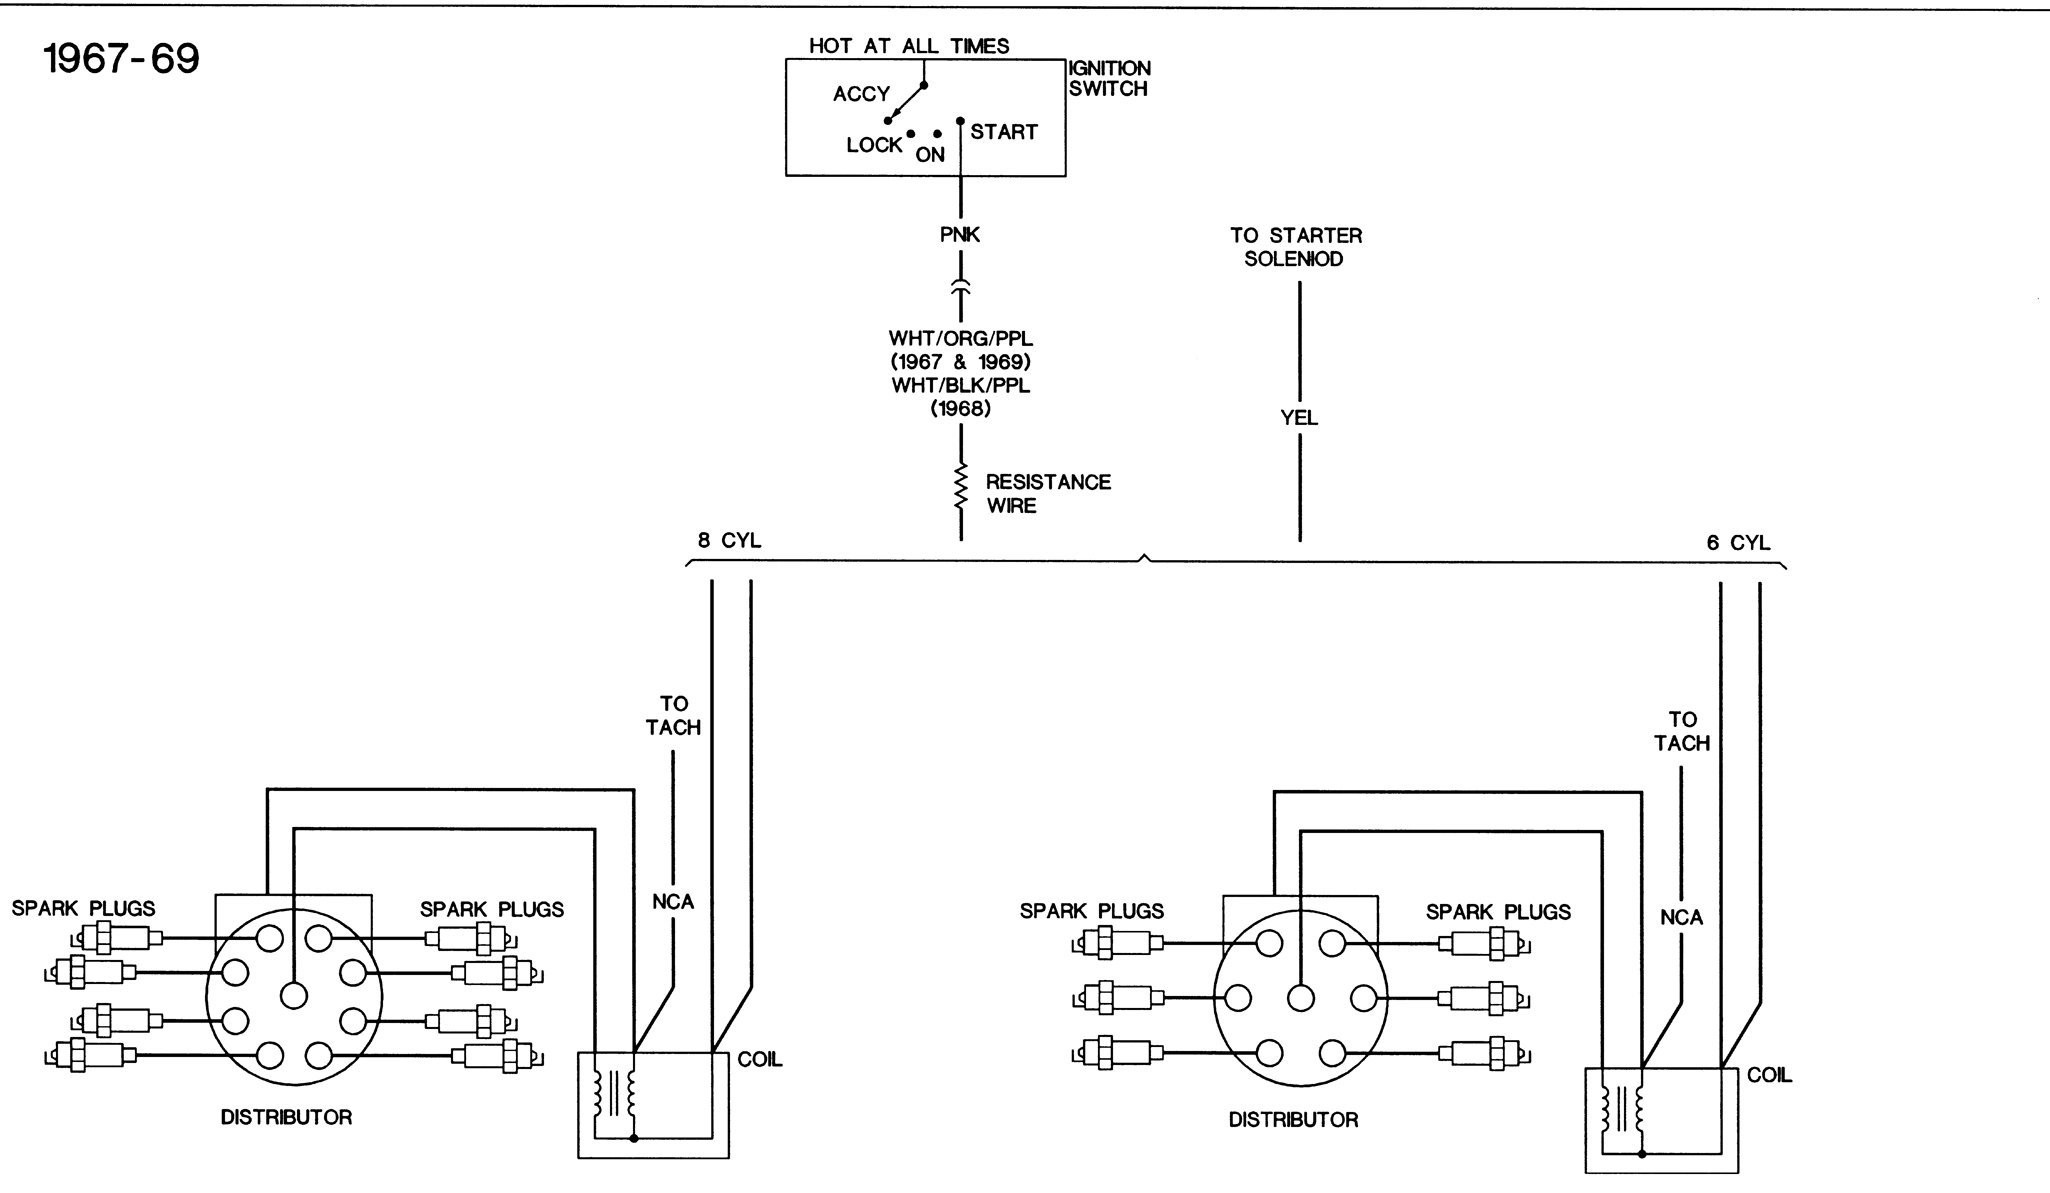 1967 Camaro Wiring Diagram 74 Firebird Schematic Free Fuse Box Download Awesome 1979 Everything You Need To Of